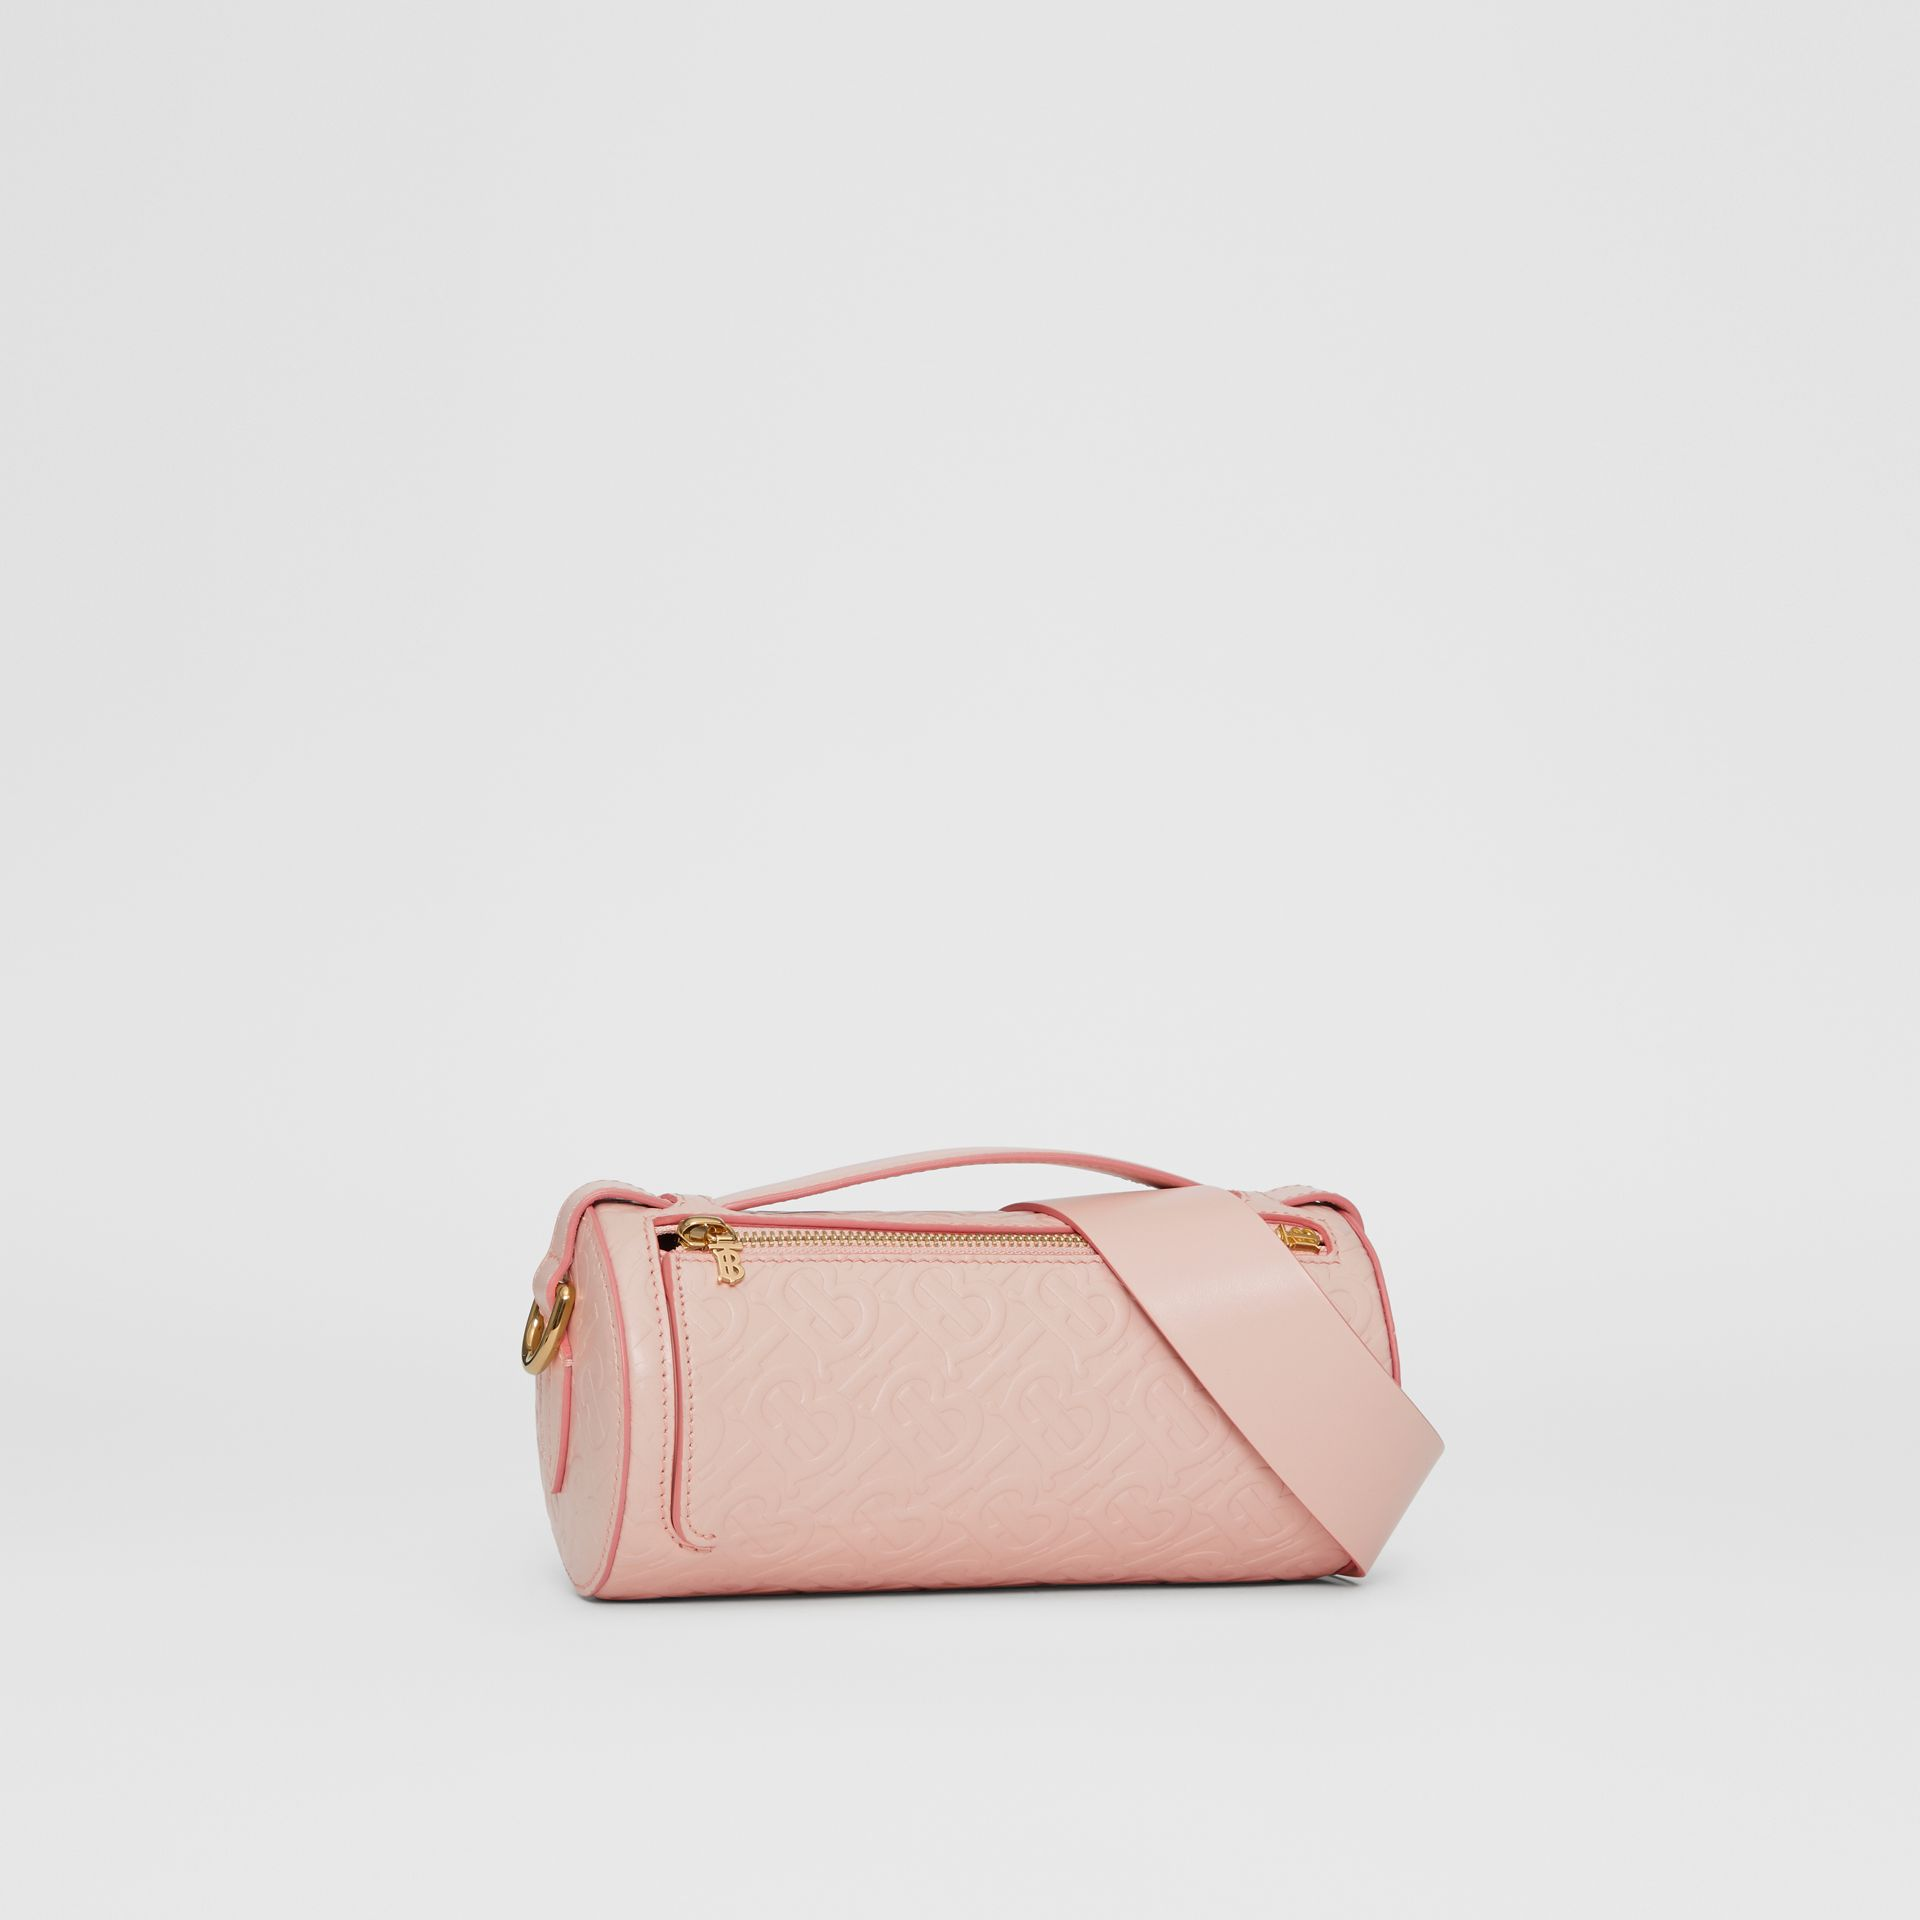 Sac The Barrel en cuir Monogram (Beige Rose) - Femme | Burberry Canada - photo de la galerie 6